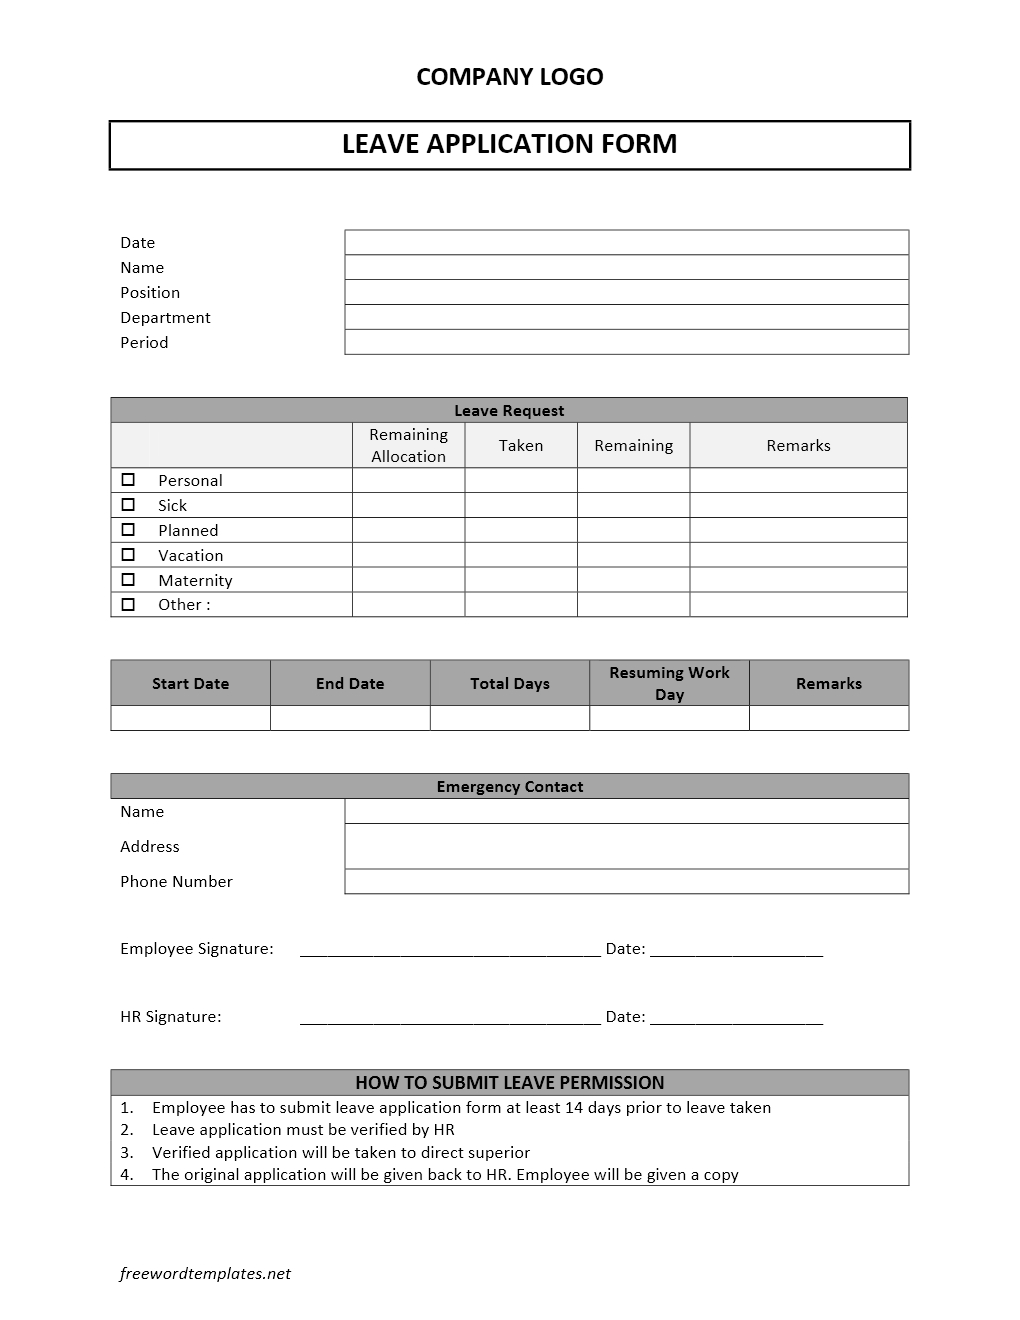 Doc7681024 Leave Application Forms Staff Leave Application – Format of Leave Application Form